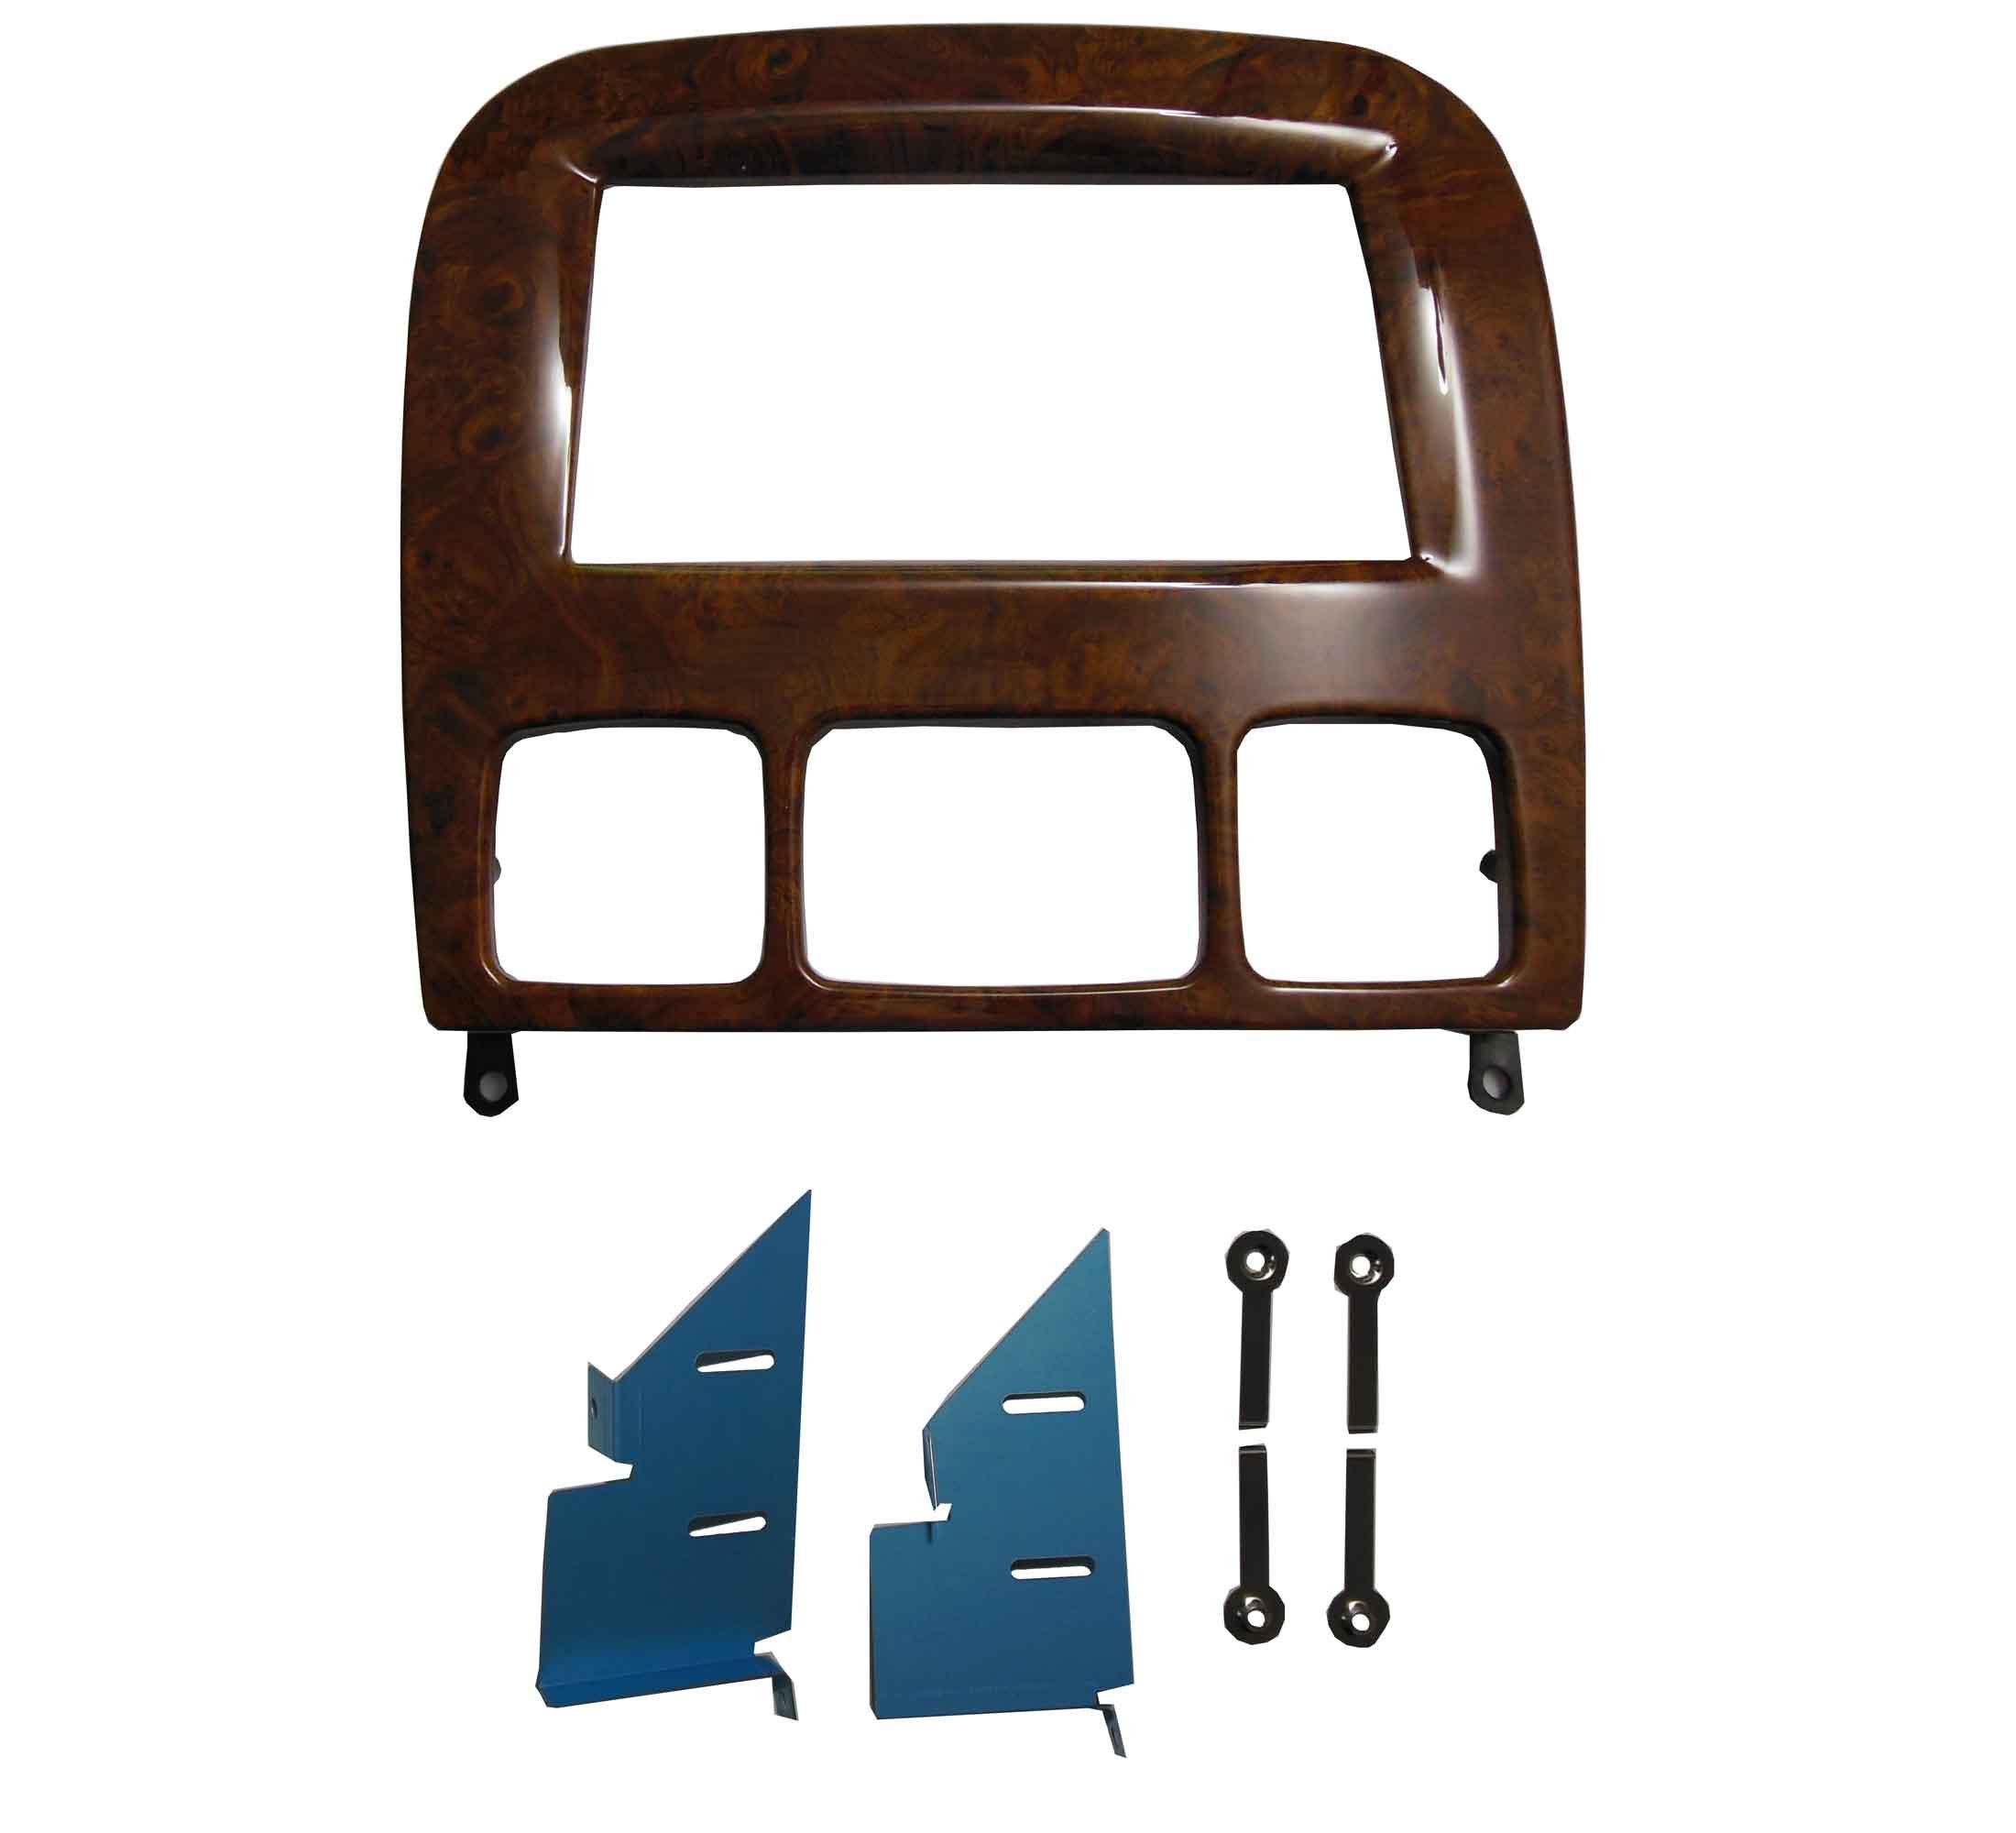 DKM Double Din Radio Stereo Installation Trim for Mercedes Benz S Class W220 Dash Trim Kit Fascia 1998-2005 Wood Grain 17398mm Opening by DKMUS